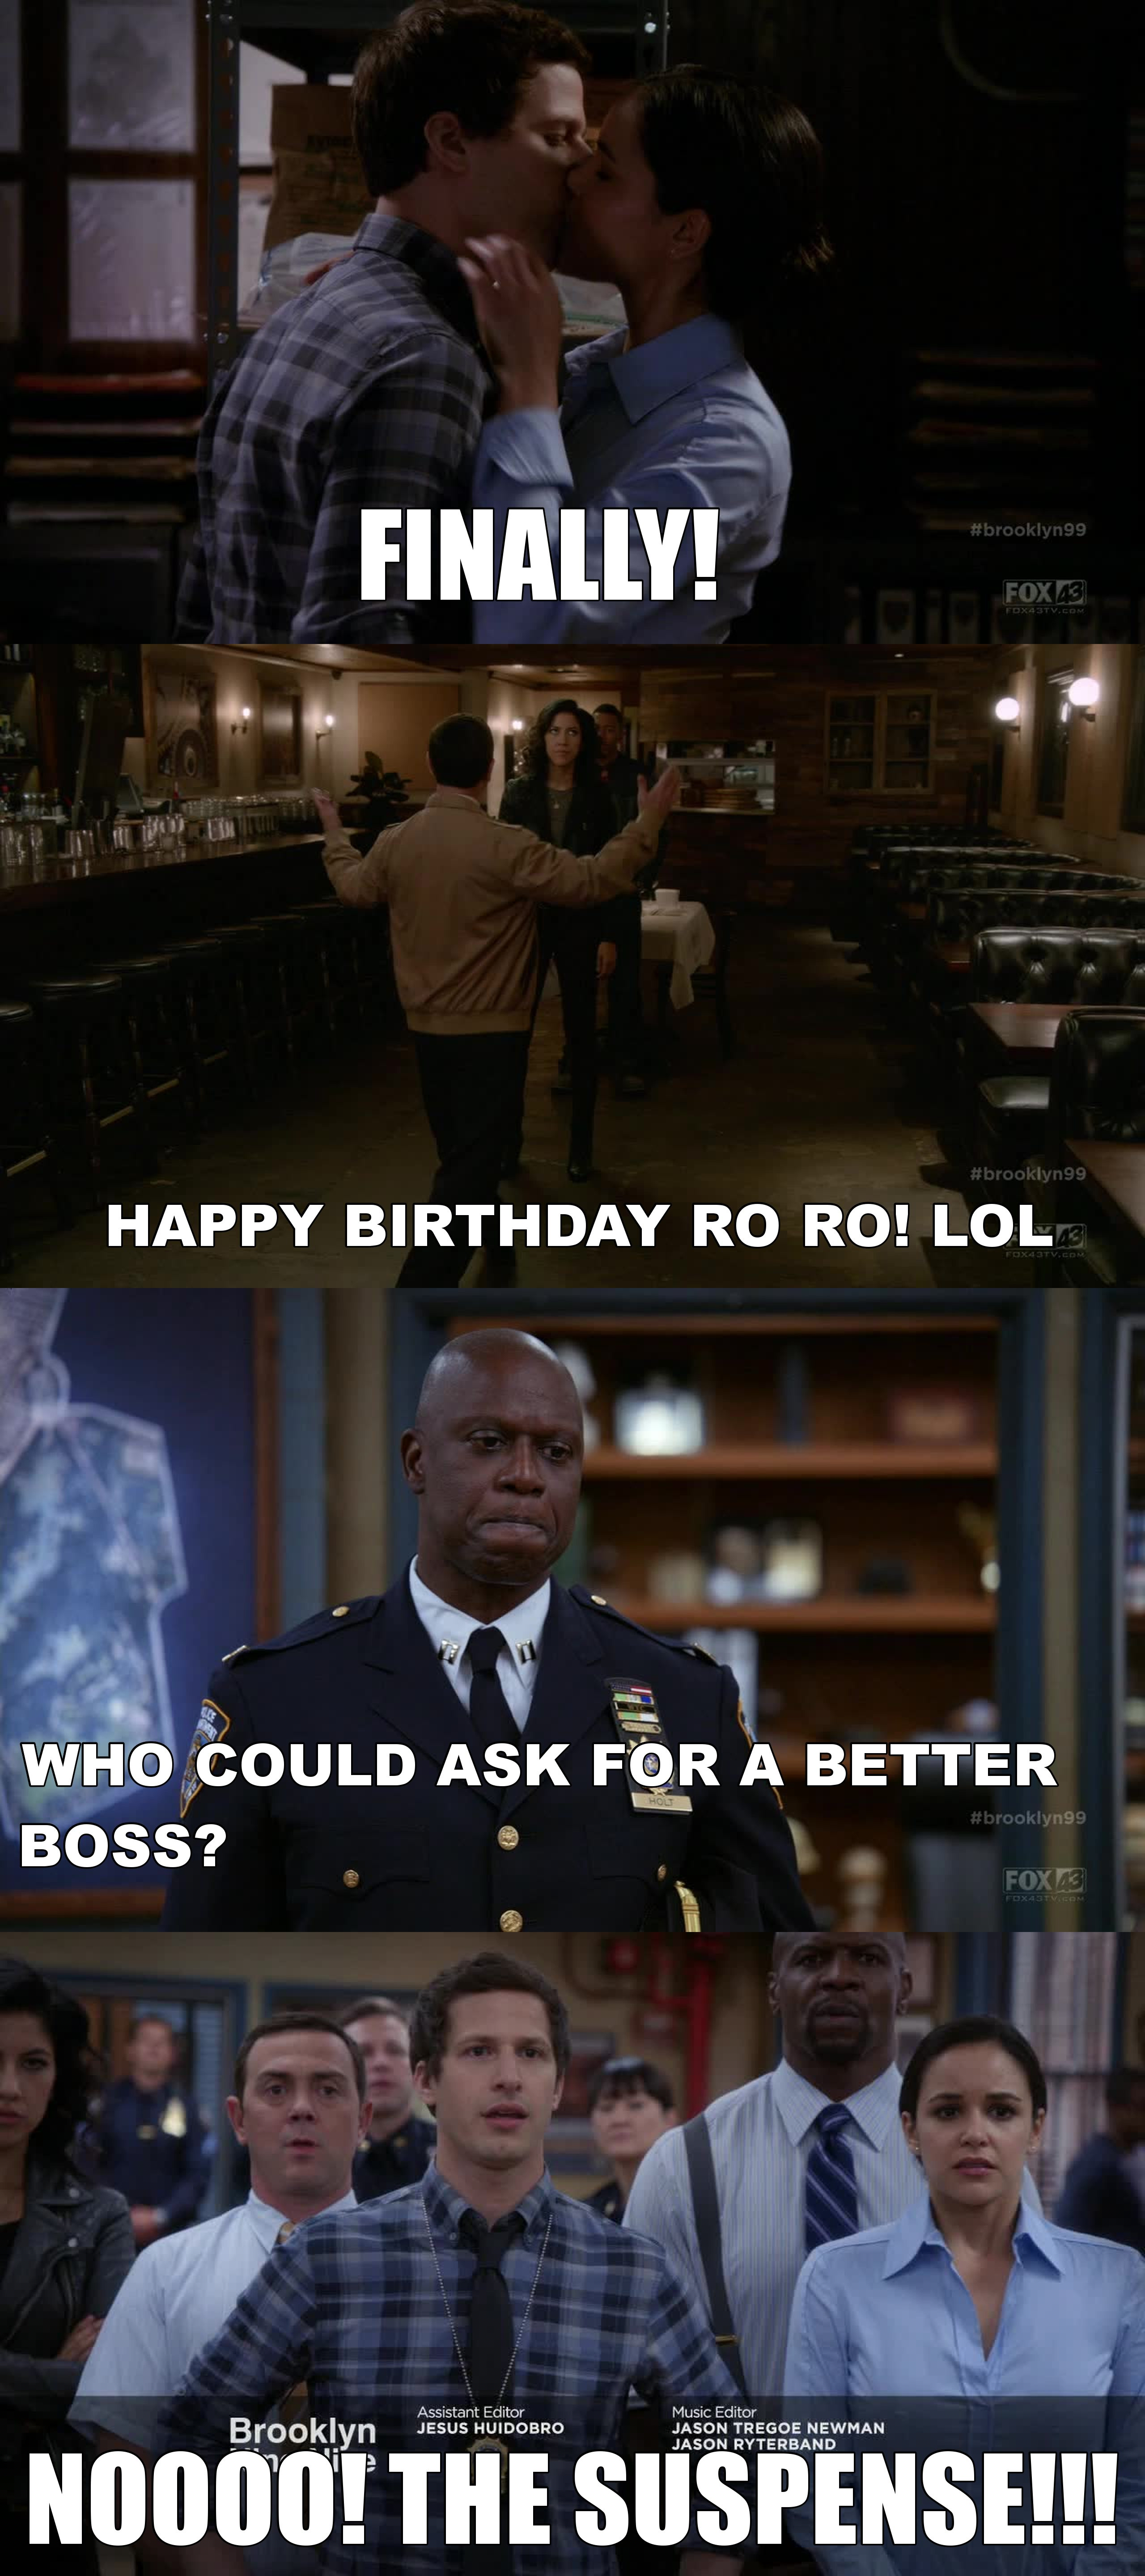 It finally happened!!!! But now everything is gonna change! Are we ready for that!? lol And noble Captain Holt! Always sacrificing for the 99!